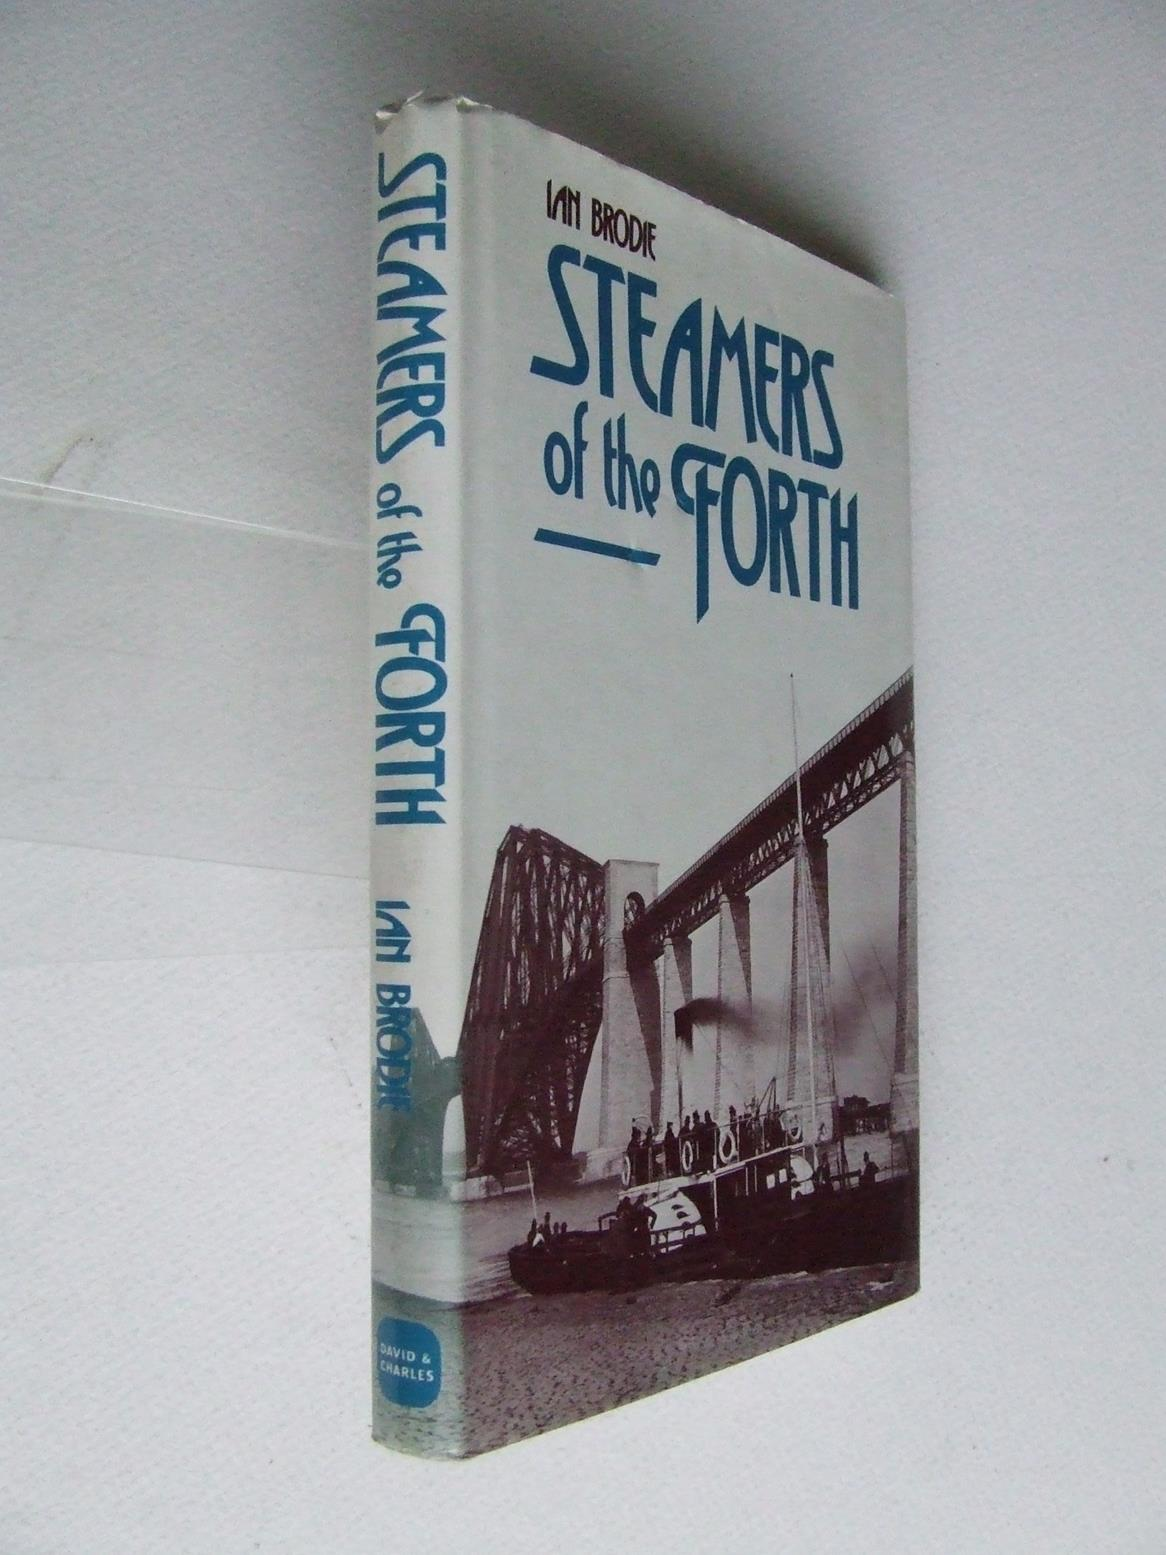 Steamers of the Forth